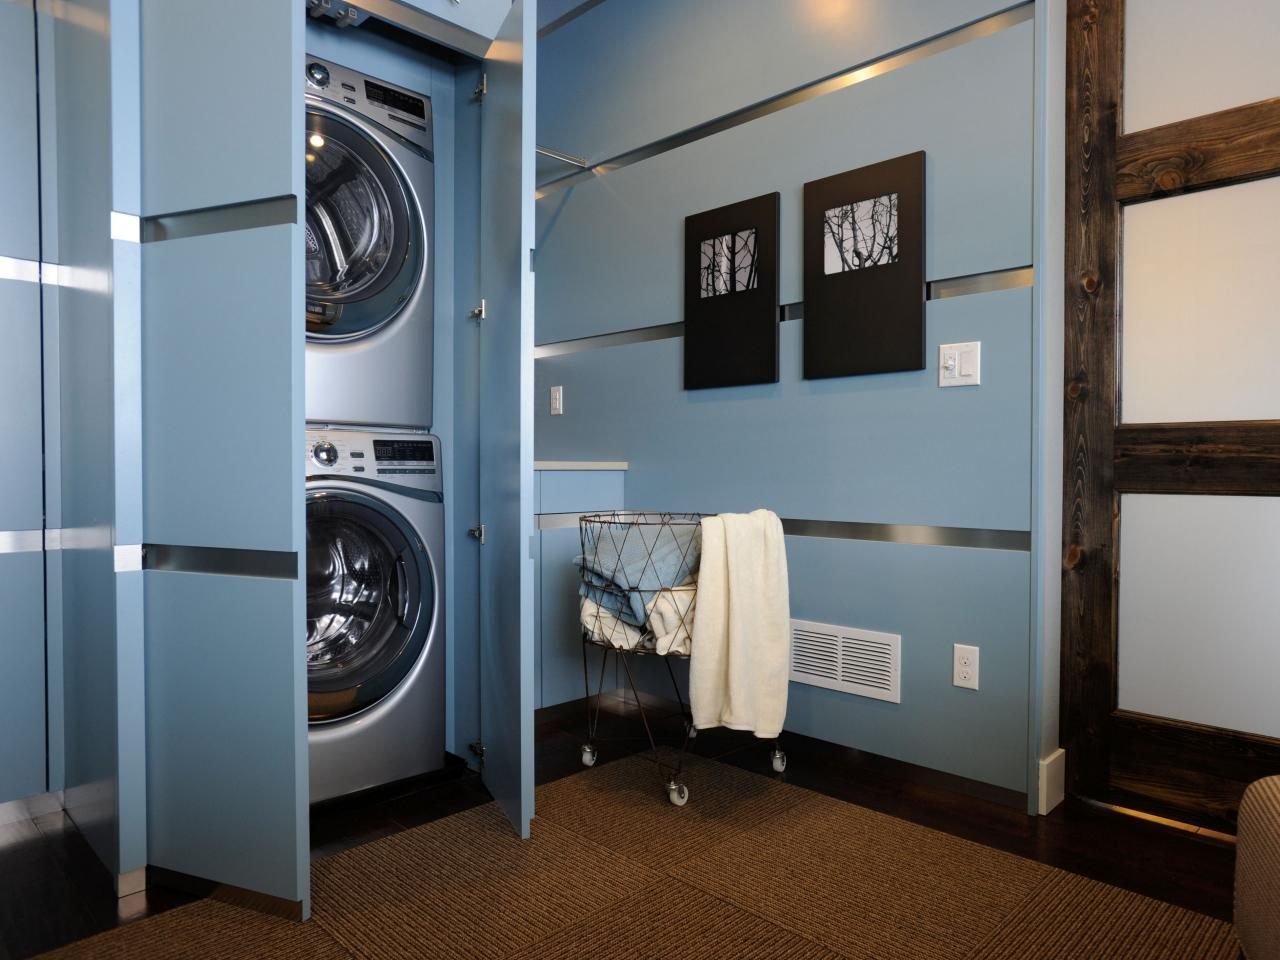 Basement Laundry Room Interior Remodel For Basement Laundry Rooms Home Remodeling Ideas For Basements